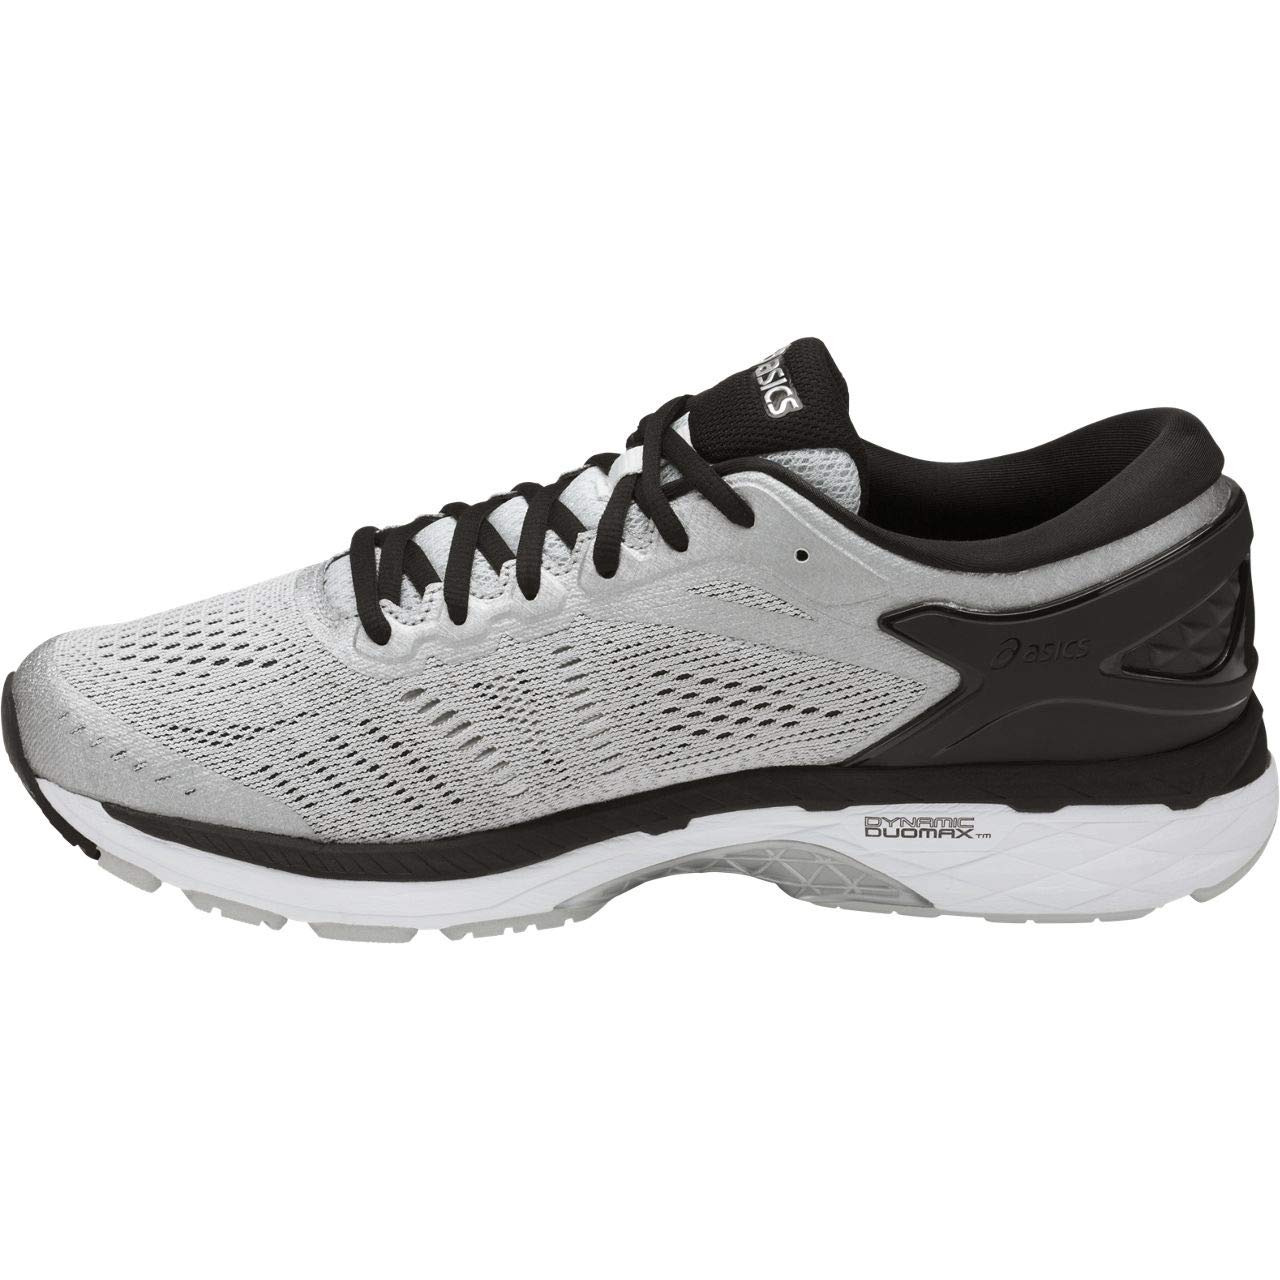 ASICS Mens Gel-Kayano 24 Running Shoe, Silver/Black/Mid Grey, 6 2E US by ASICS (Image #2)